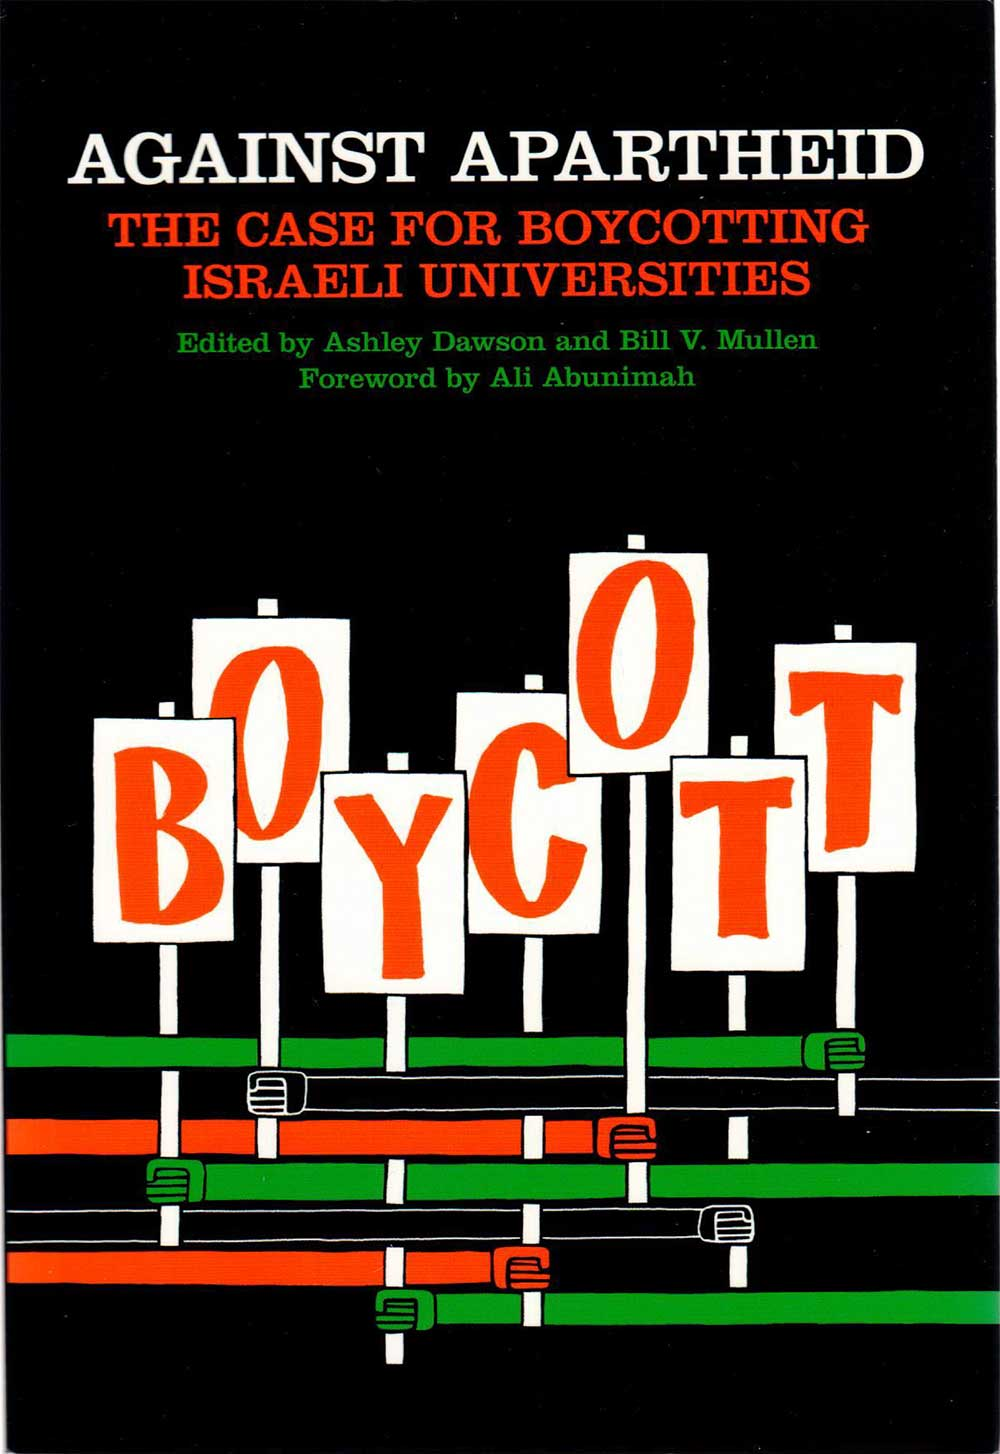 mullen-book-cover8-against-apartheid-1000px (1).jpg